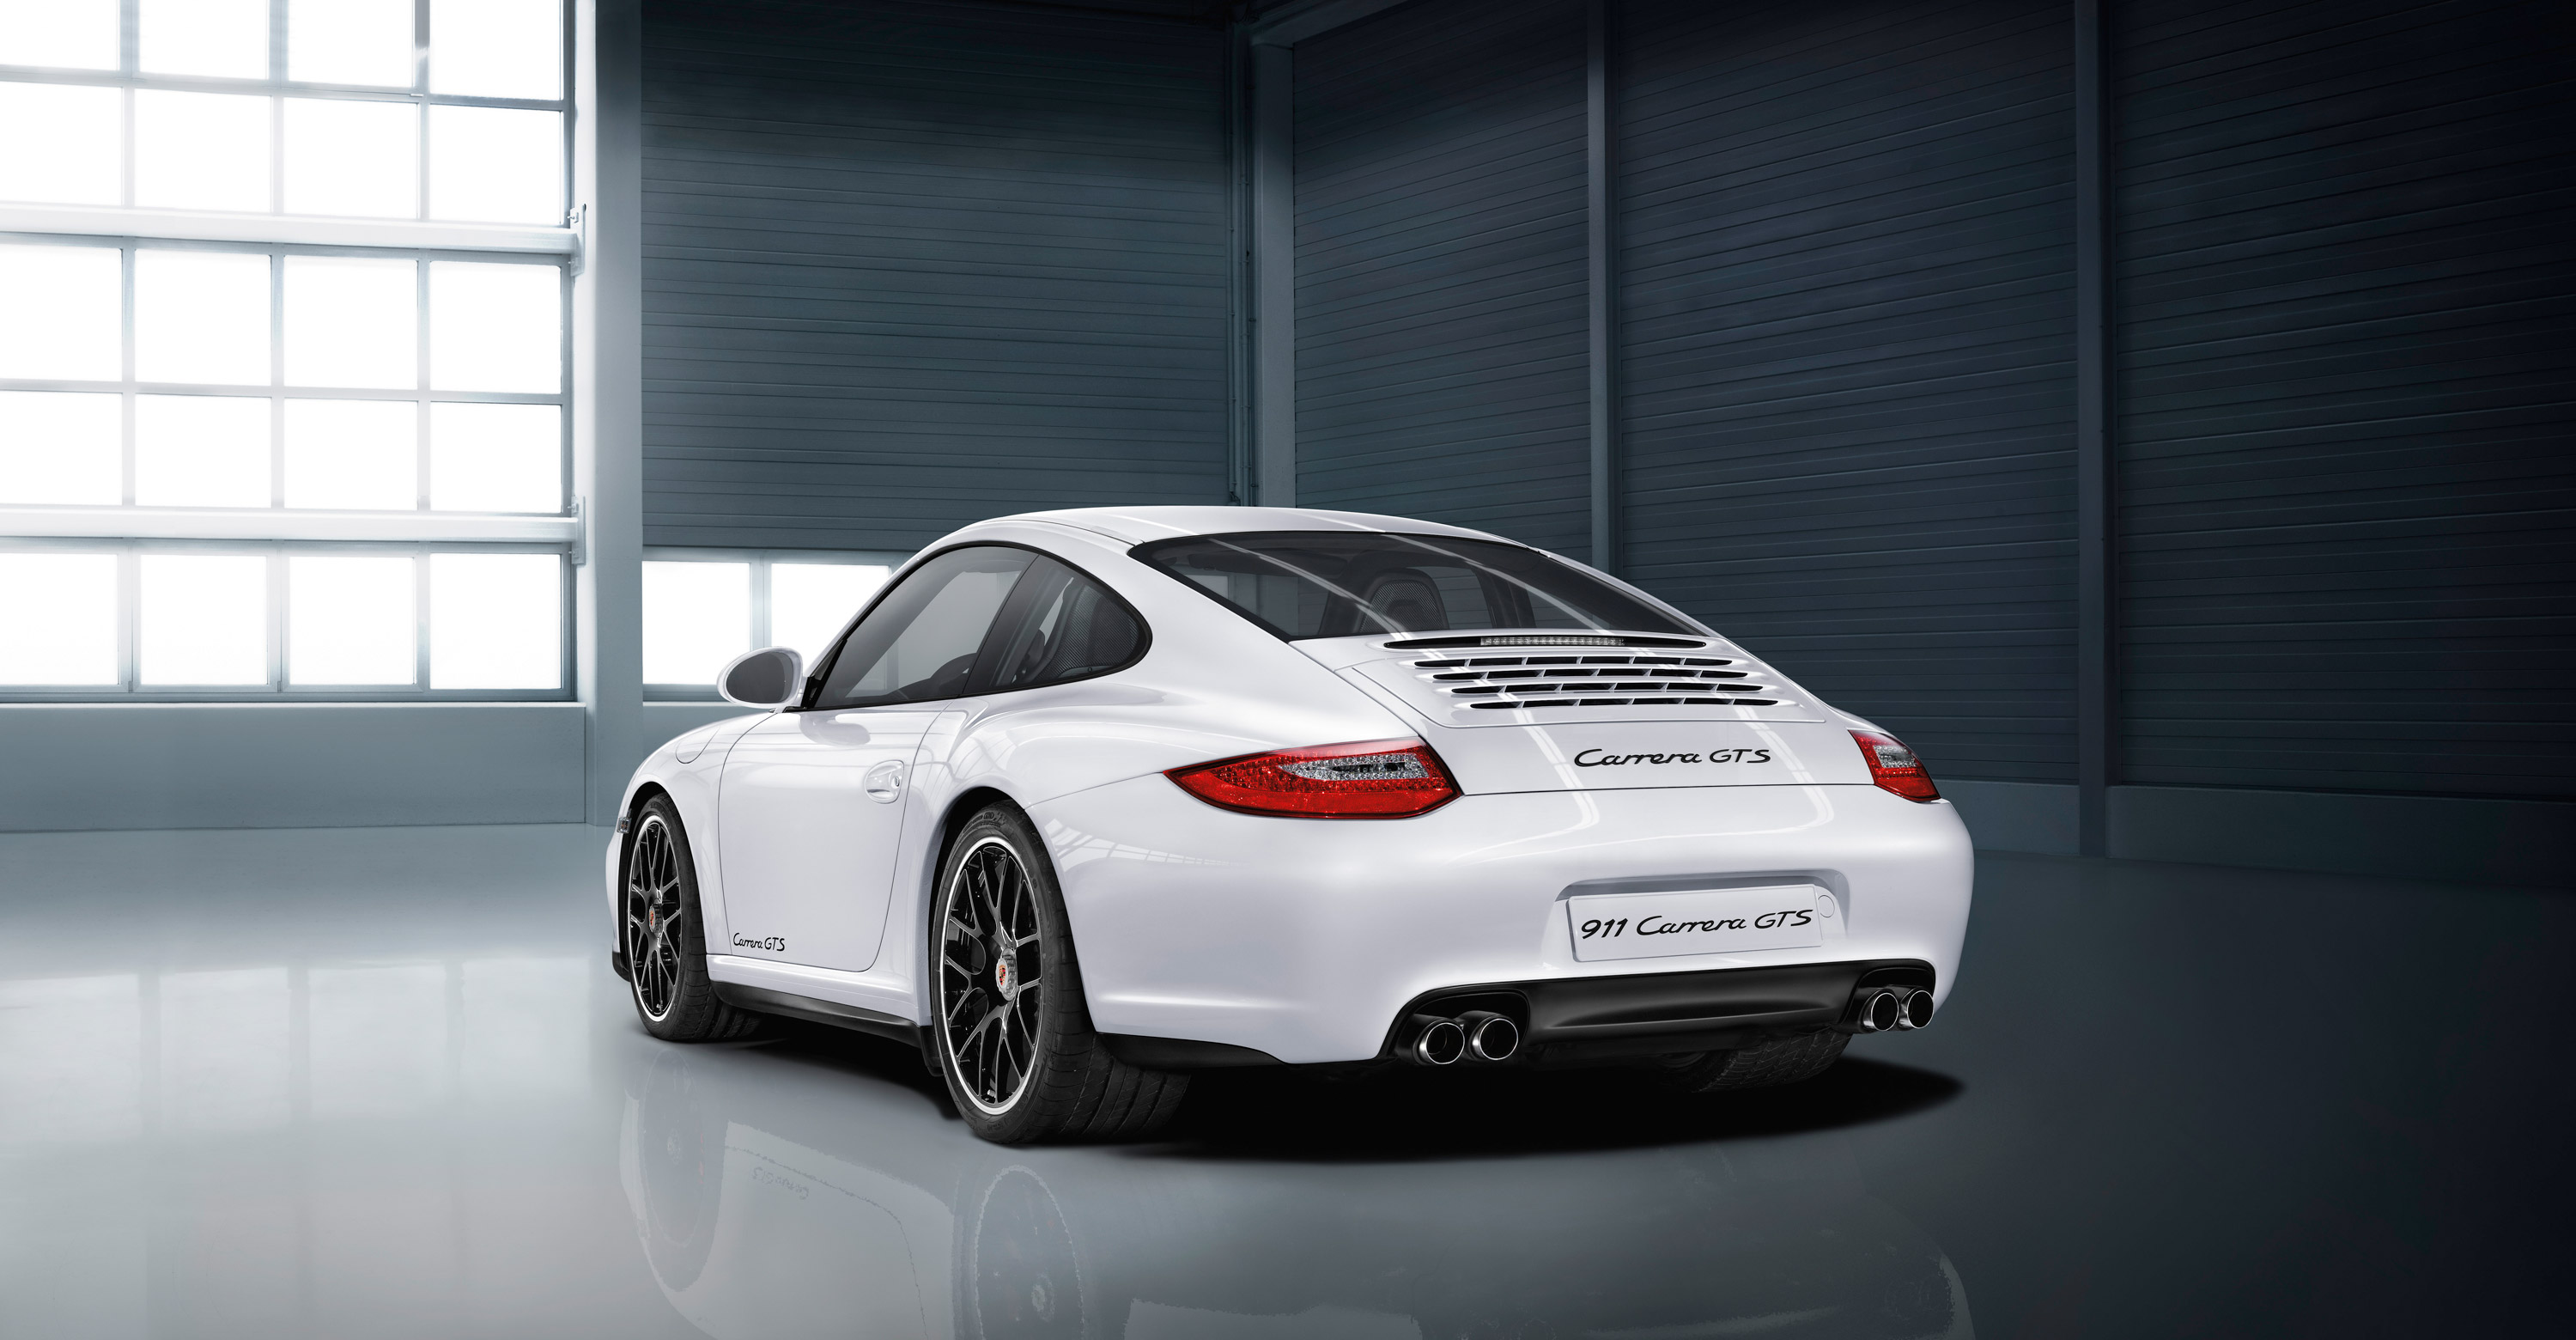 Porsche Panamera Lease >> 2011 White Porsche 911 Carrera GTS wallpapers